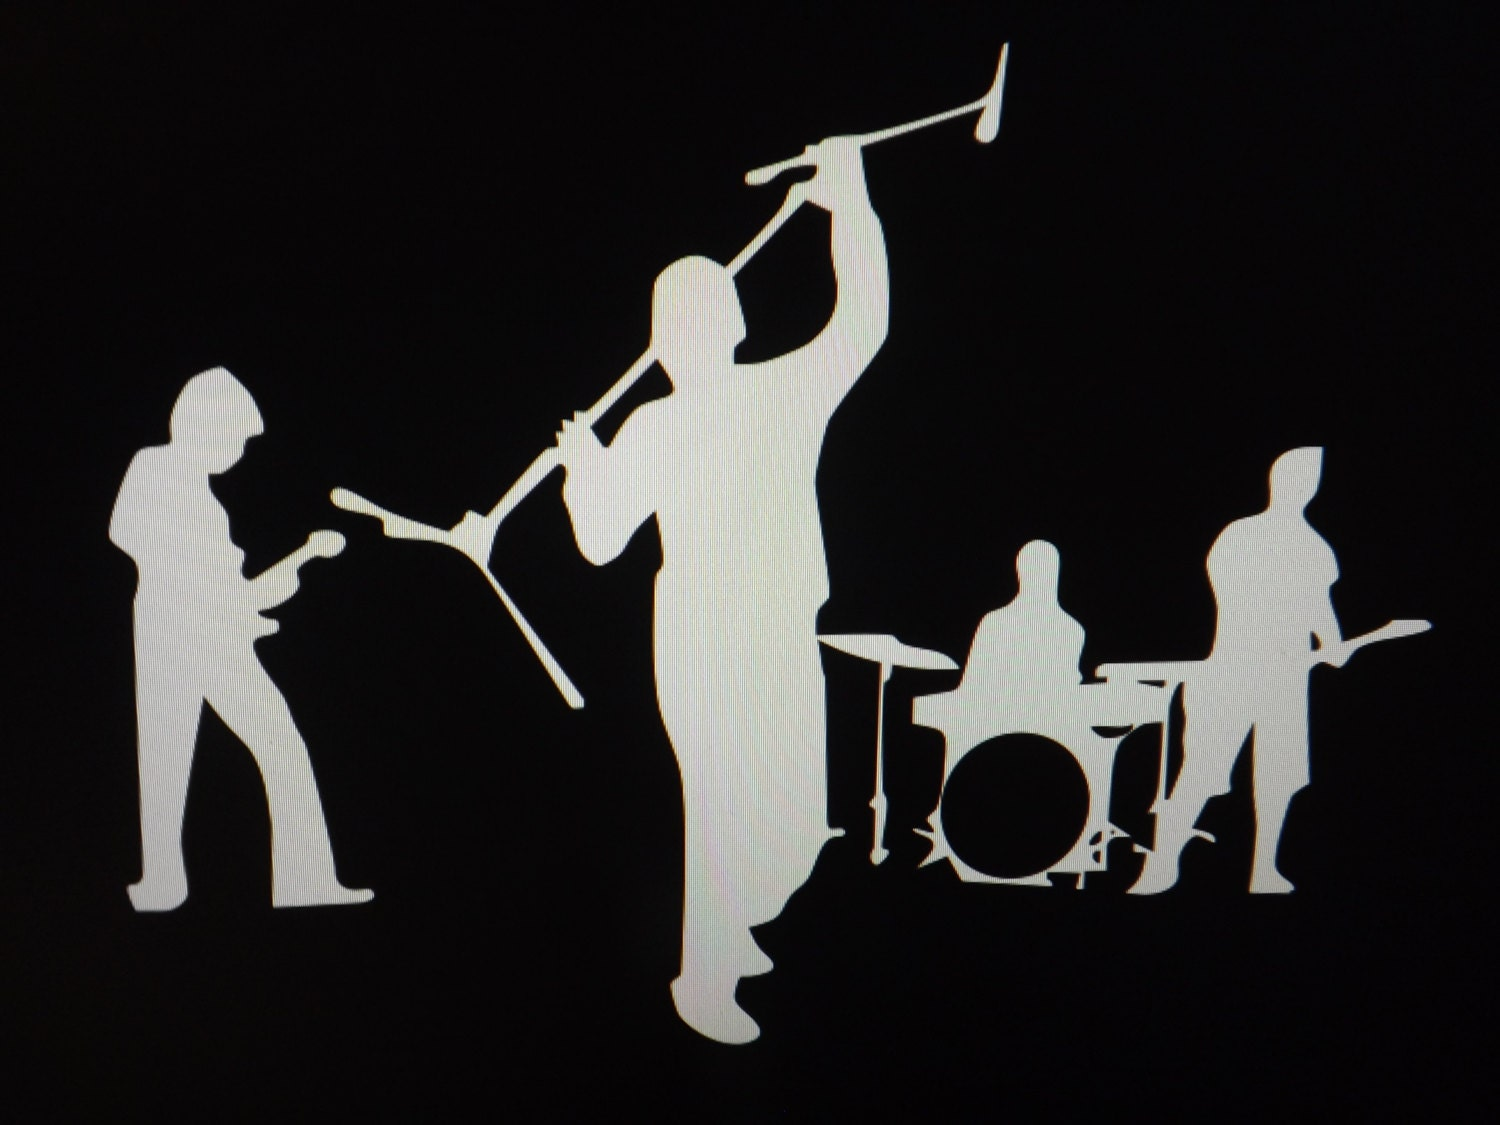 Rock Band Silhouette VehicleWindow Decal/Sticker by cigprinting Rock Band Silhouette